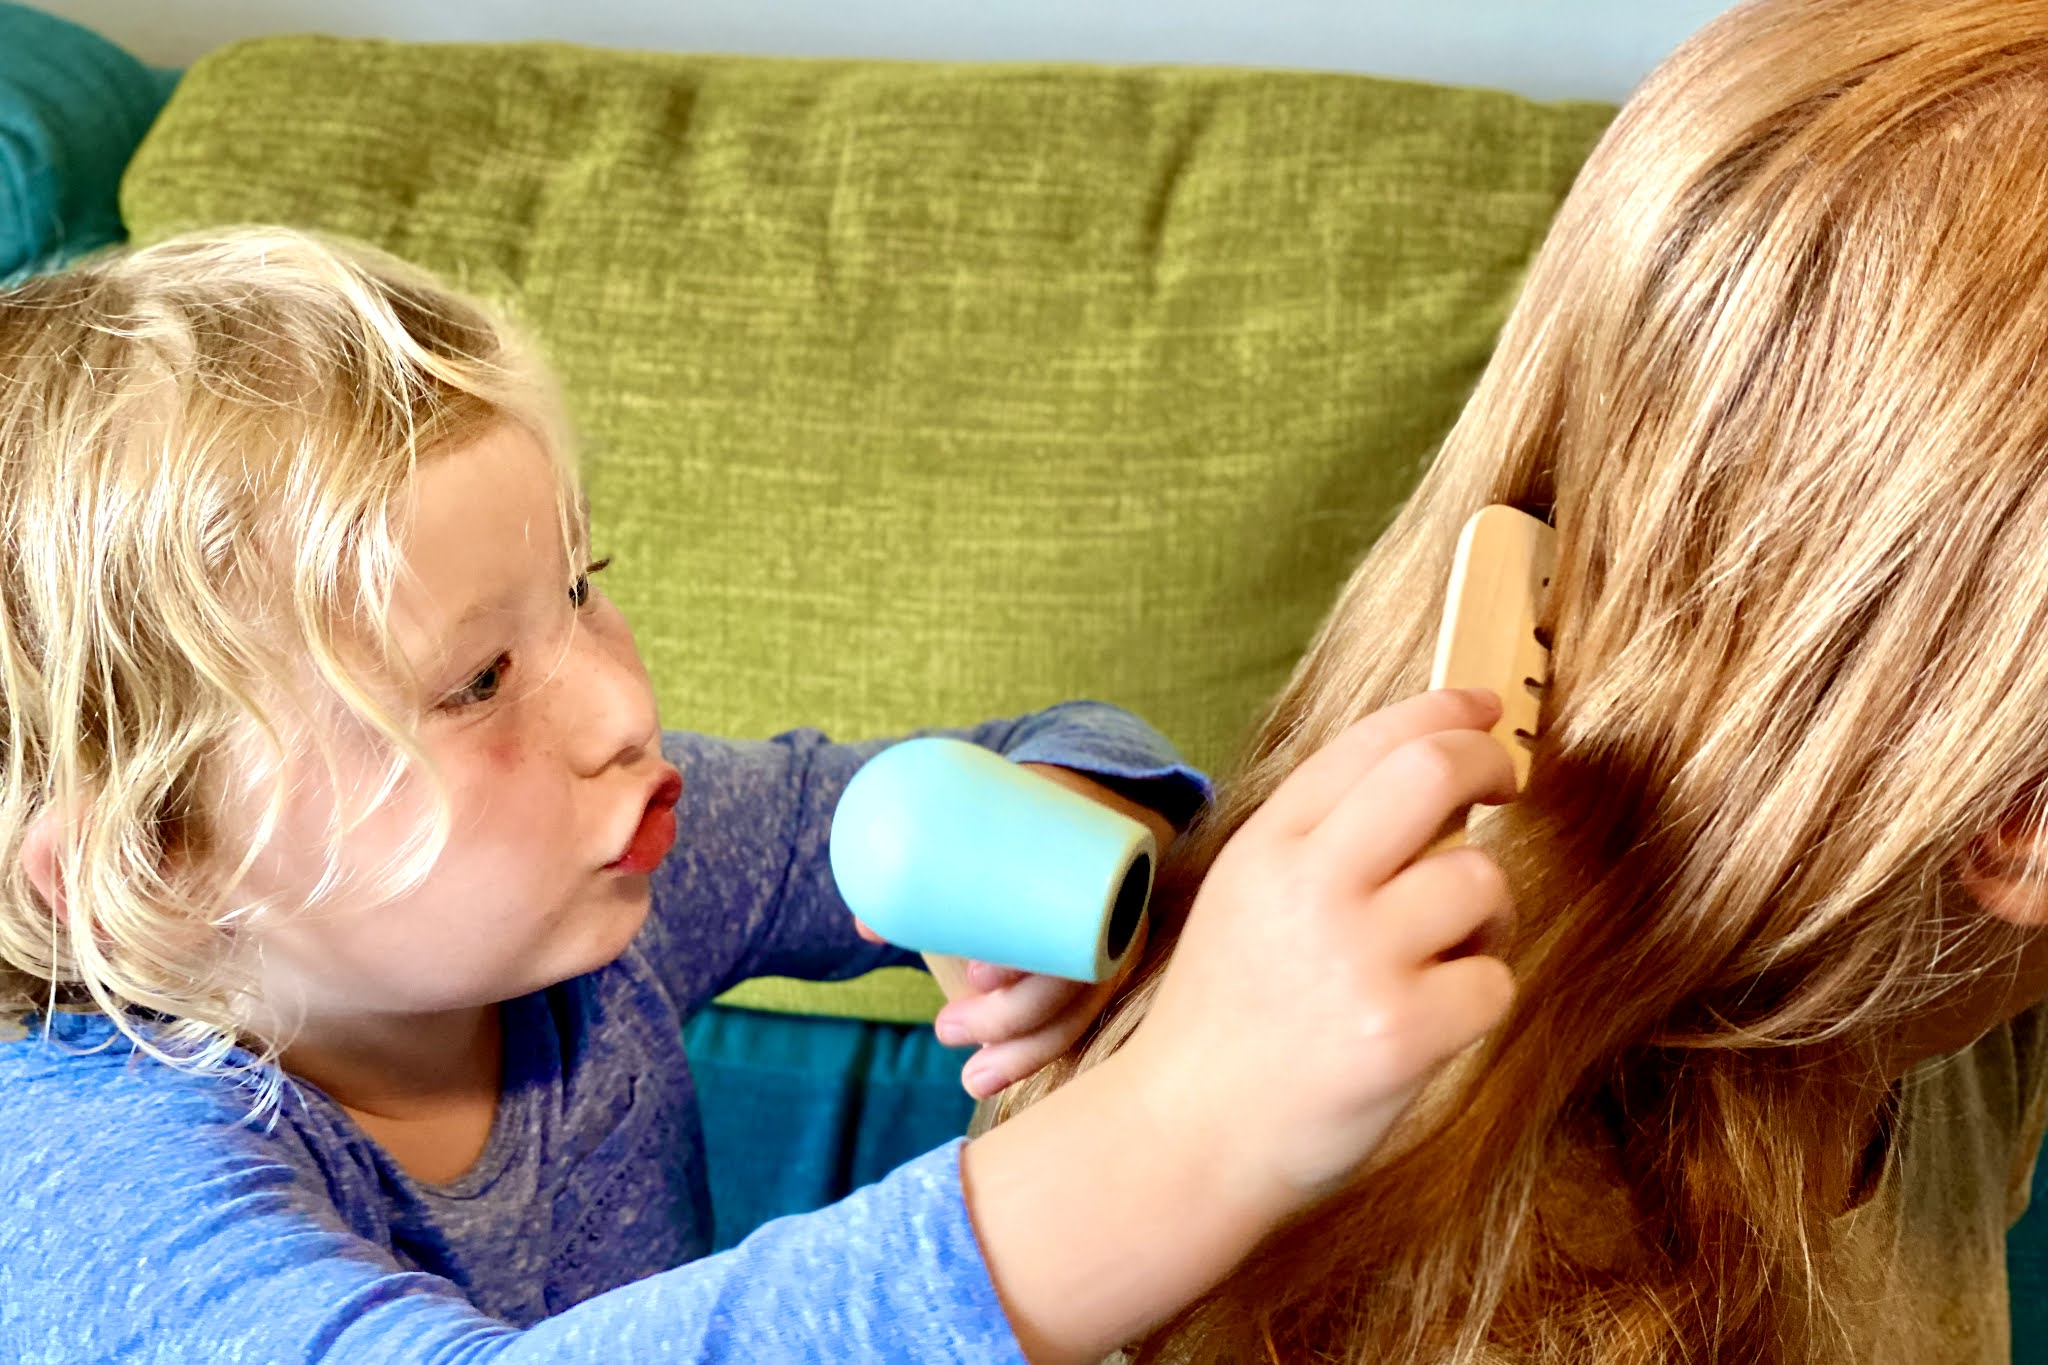 A child using a wooden hairdryer and comb received from luna and cash ethical online store for children